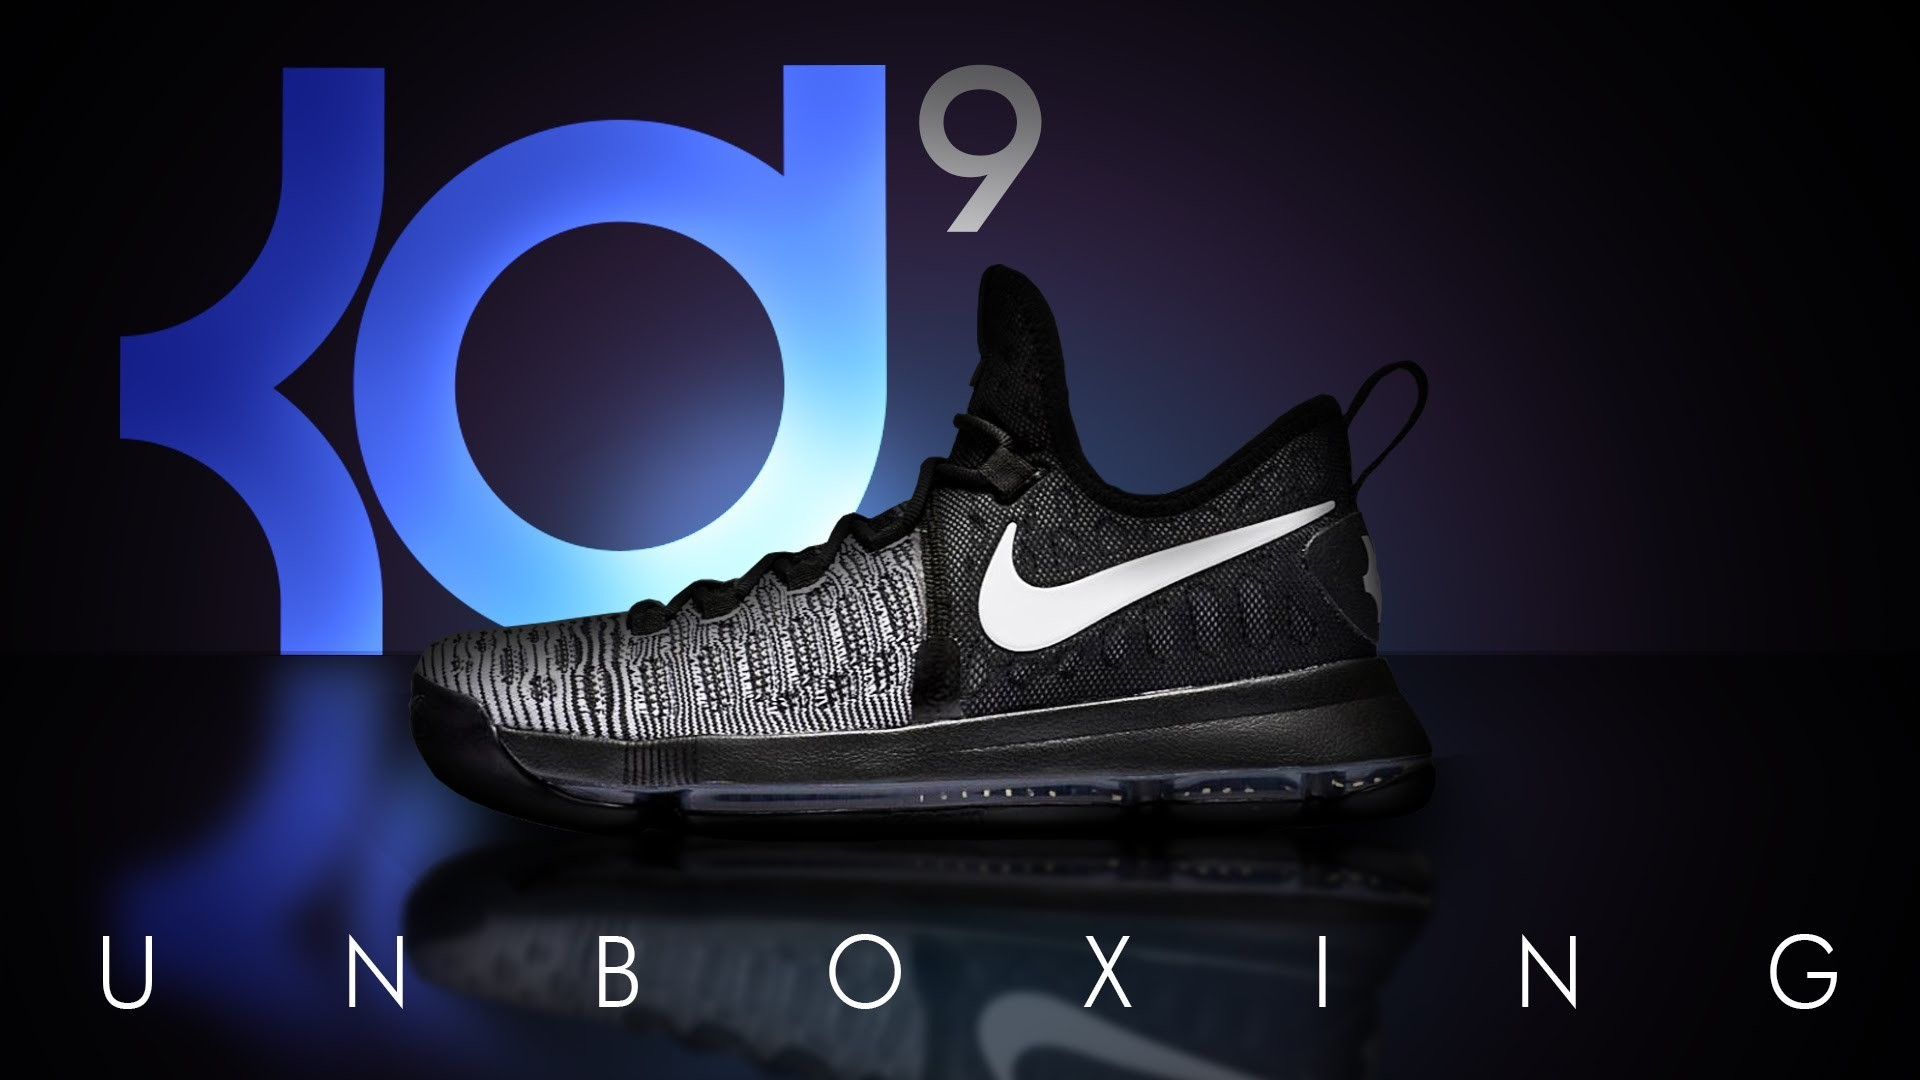 Kd Shoes Wallpapers (61+ Background Pictures